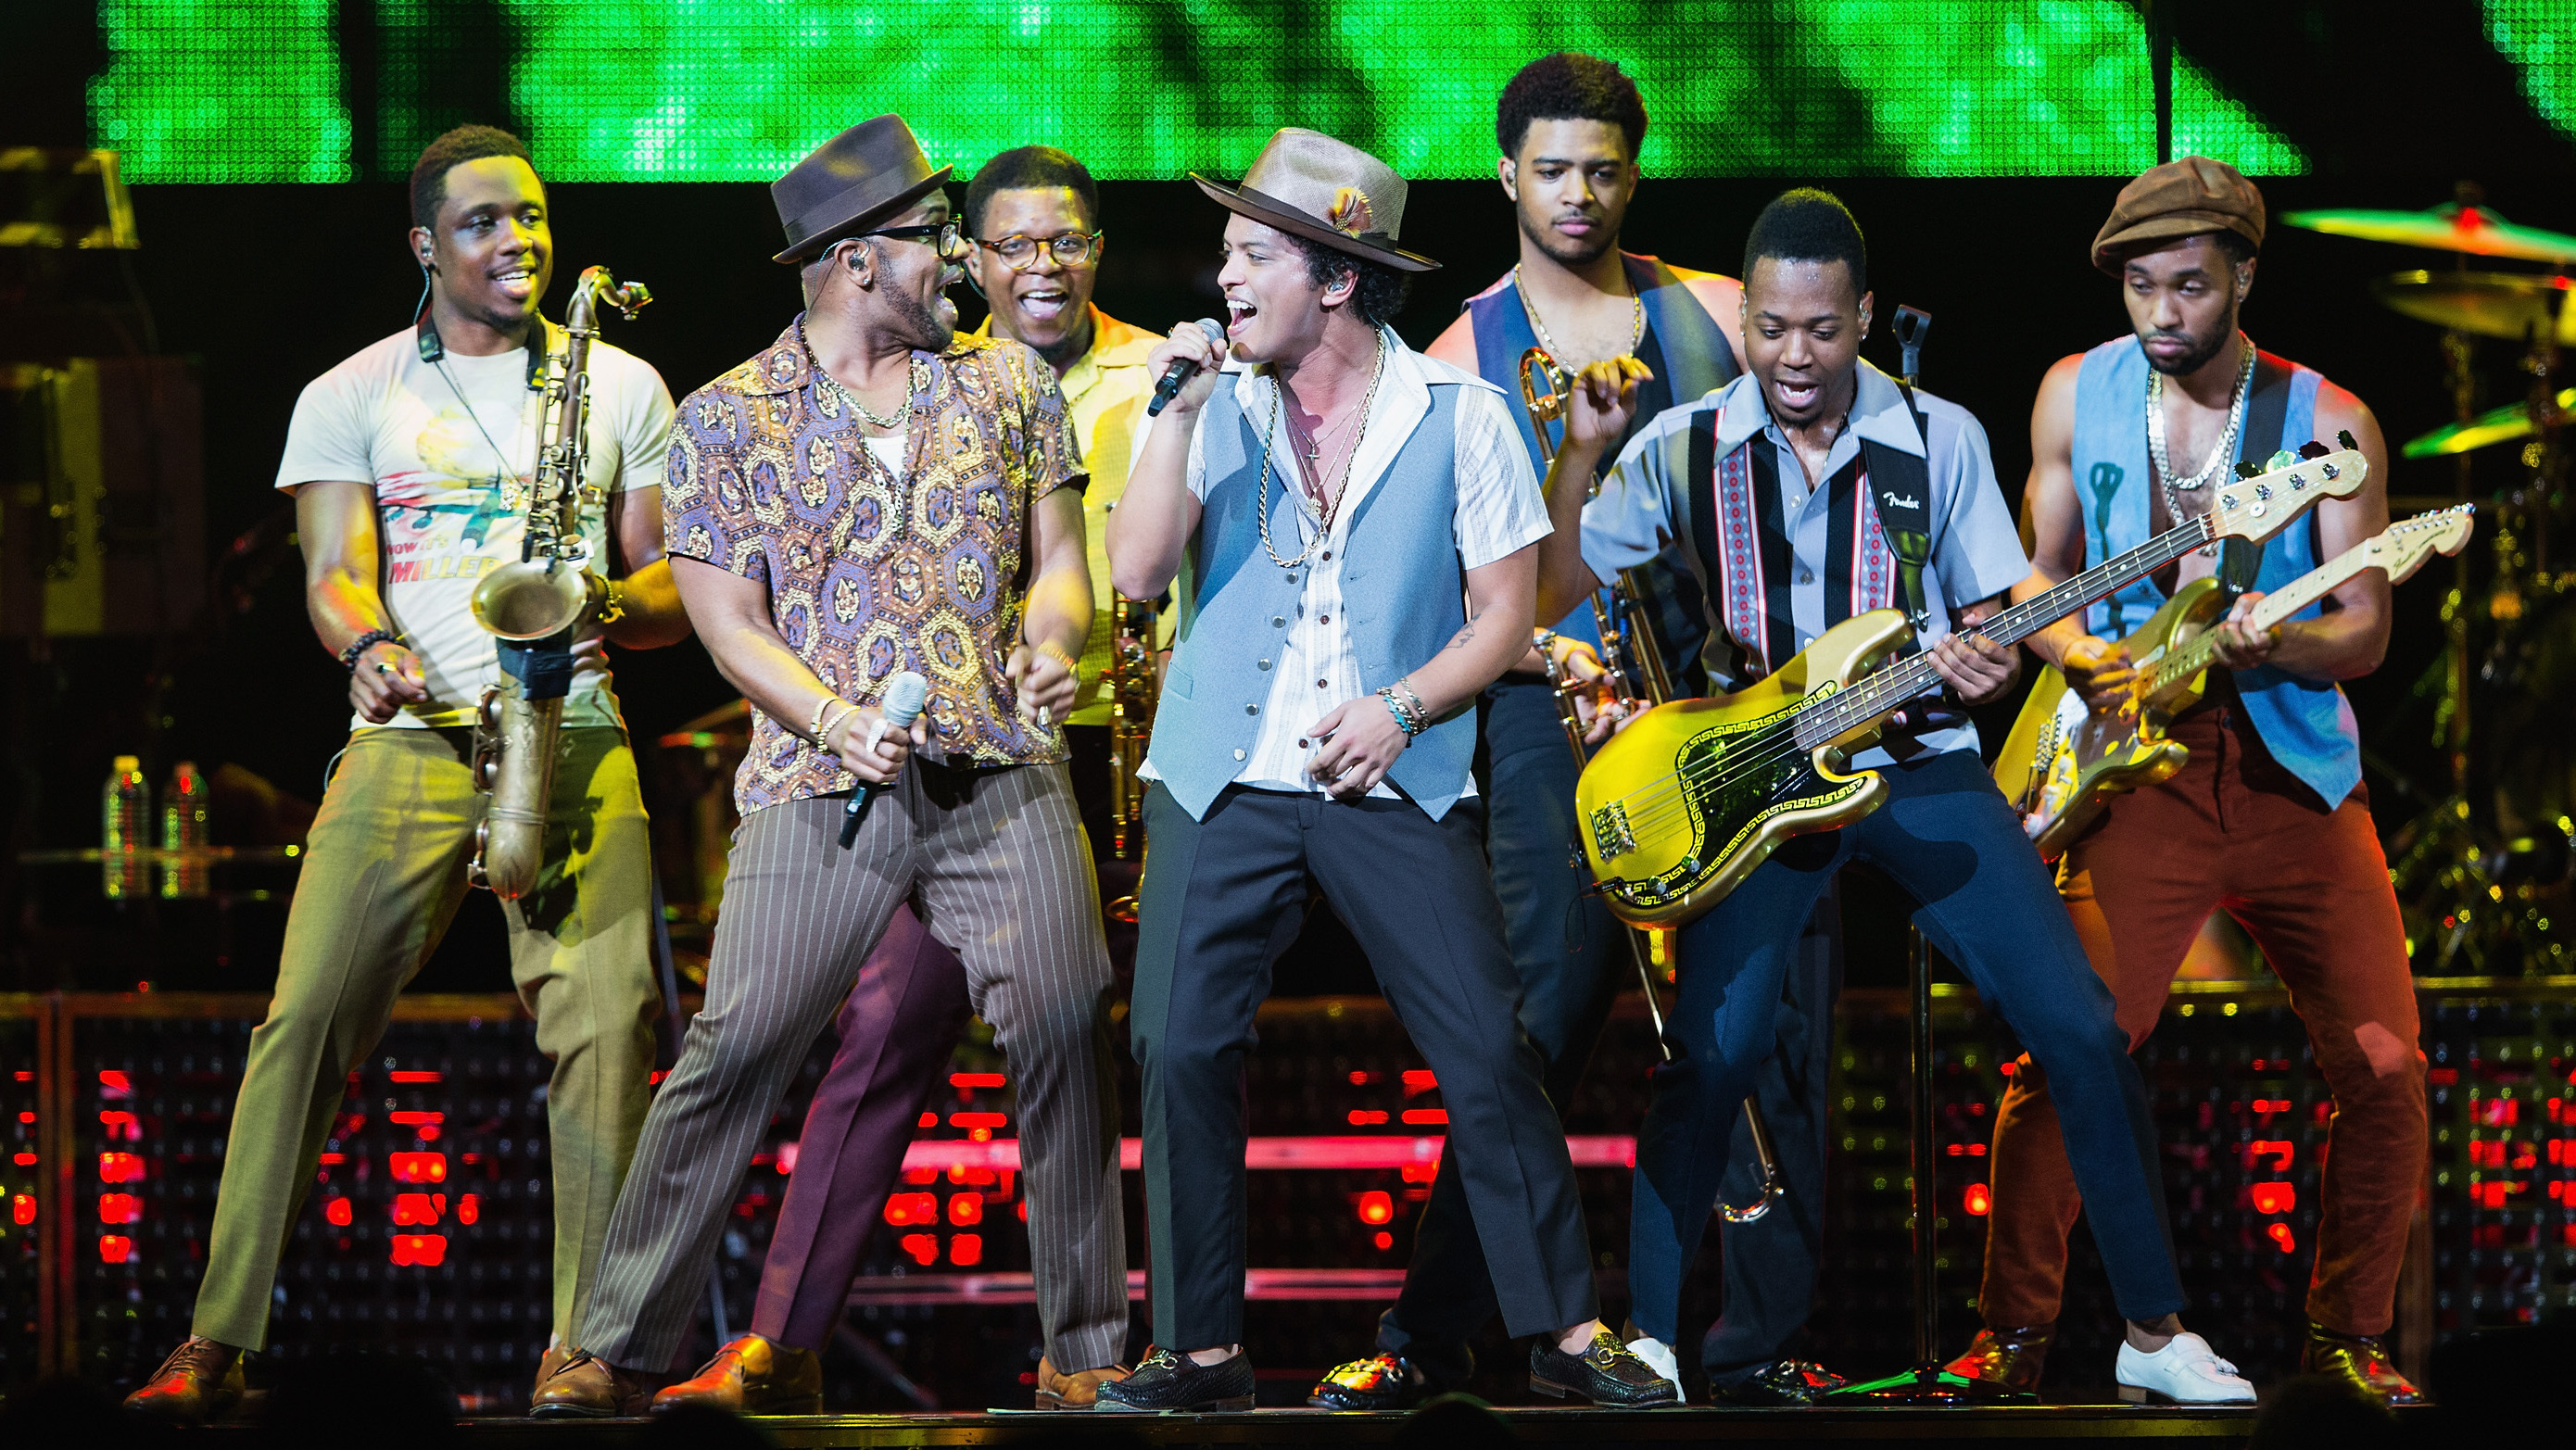 a review of bruno mars concert Bruno mars thrilled a capacity crowd at canadian tire centre on thursday with a high-energy review: bruno mars thrills with showmanship and fun concert review.